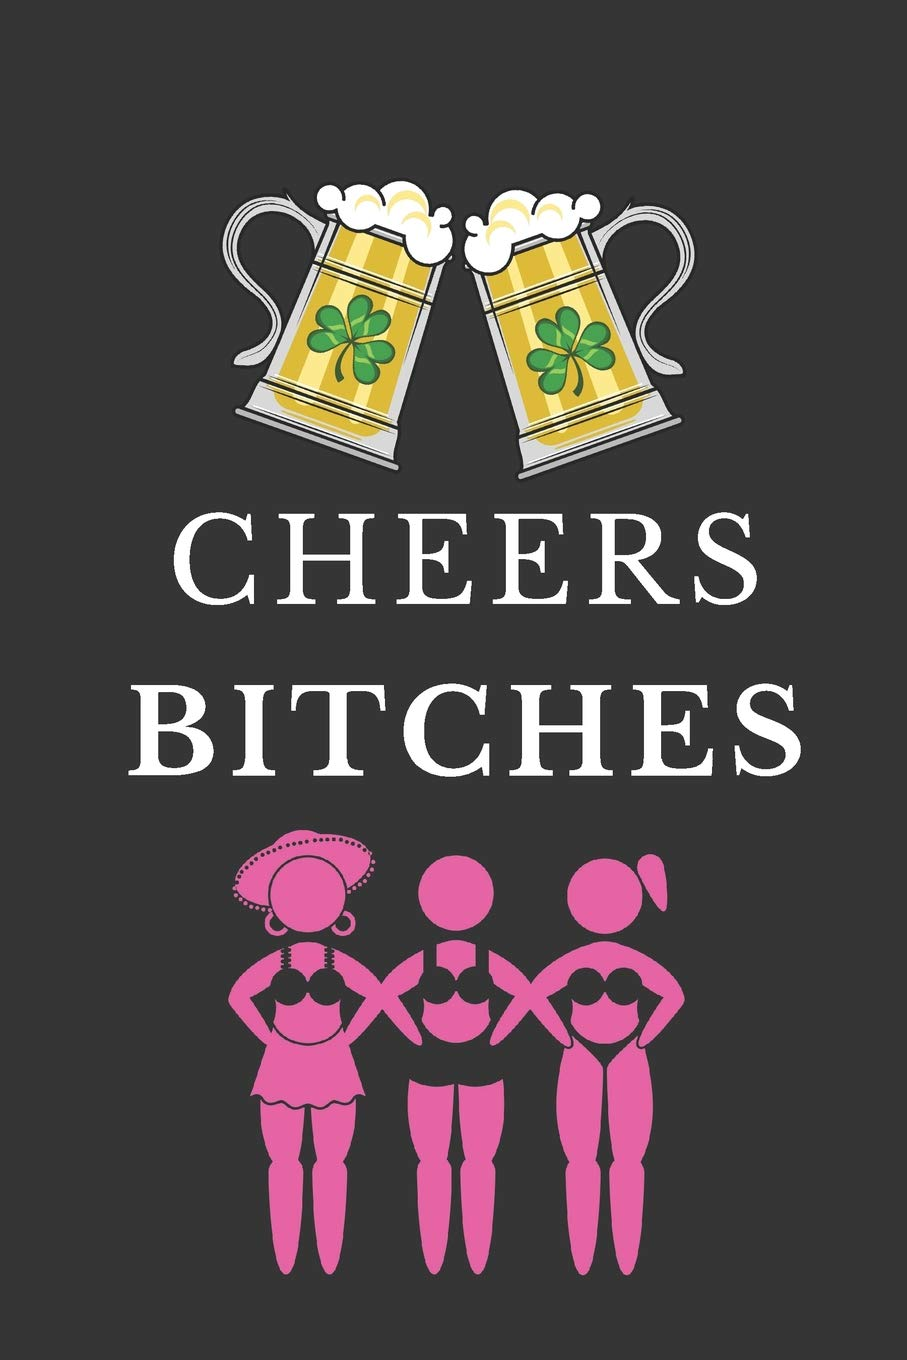 Cheers Bitches  Funny St. Patrick's Day Gifts  Lined Notebook For Women Girls And Friends